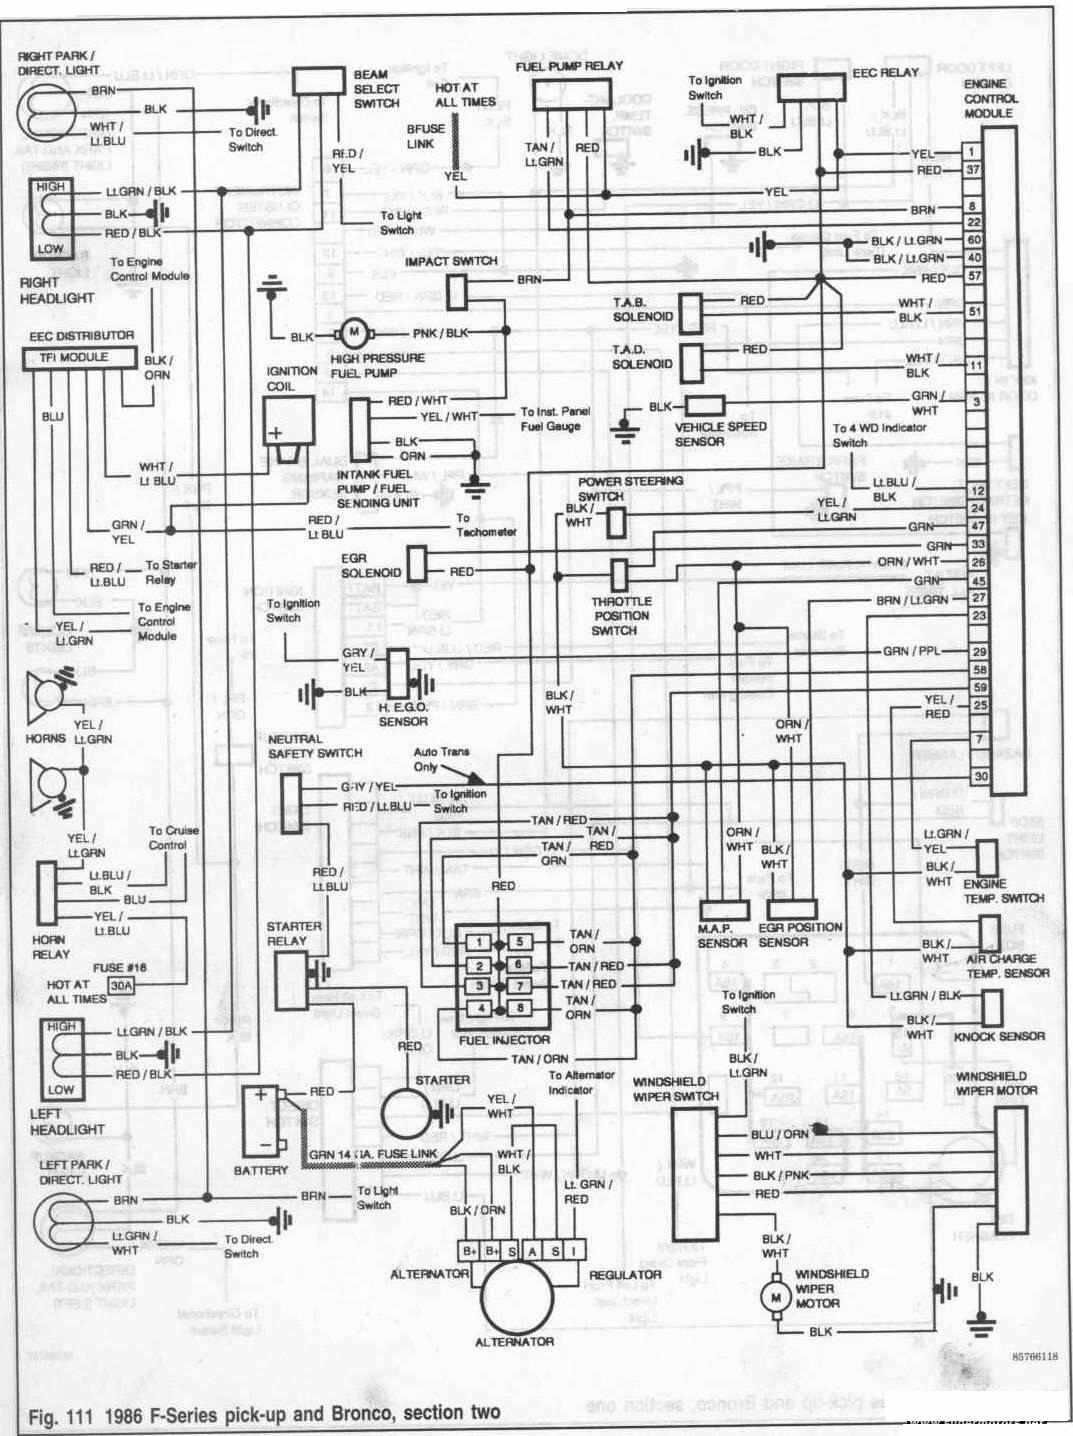 wiring diagram for a 78 ford bronco the wiring diagram 1966 Ford Bronco Wiring Diagram wiring diagram for 1978 ford bronco the wiring diagram, wiring diagram 1966 ford bronco wiring diagram